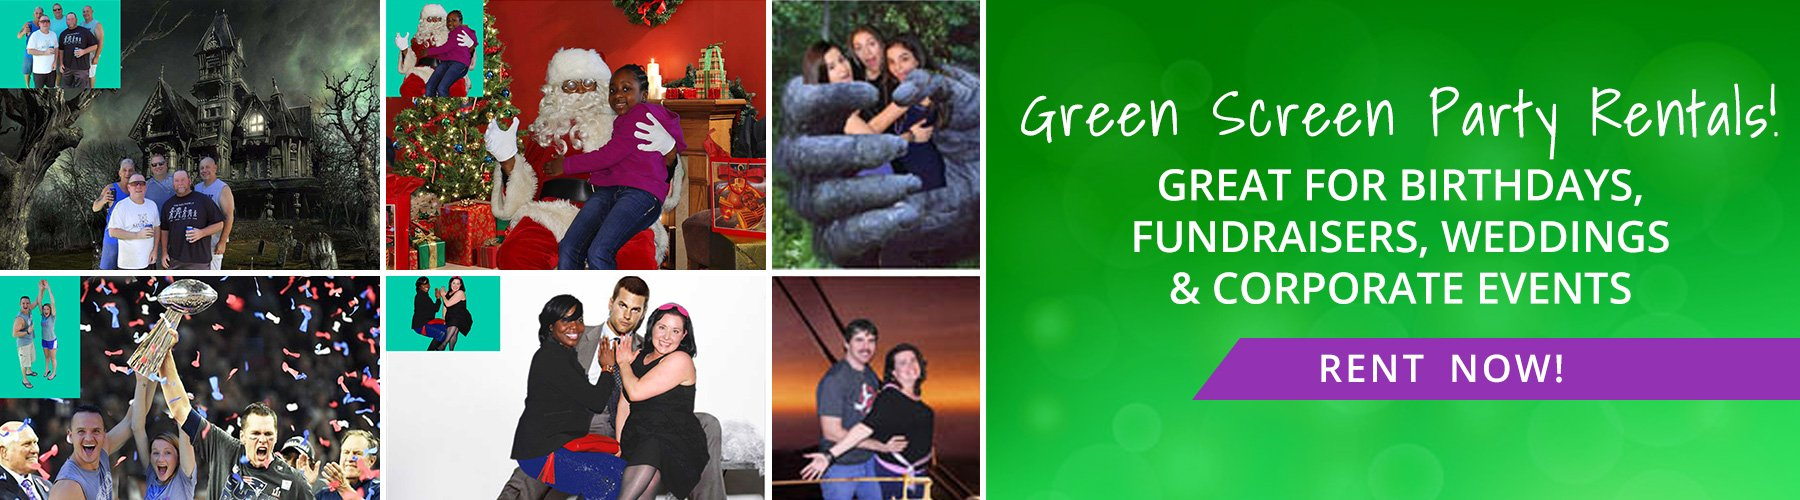 Green Screen Party Rentals